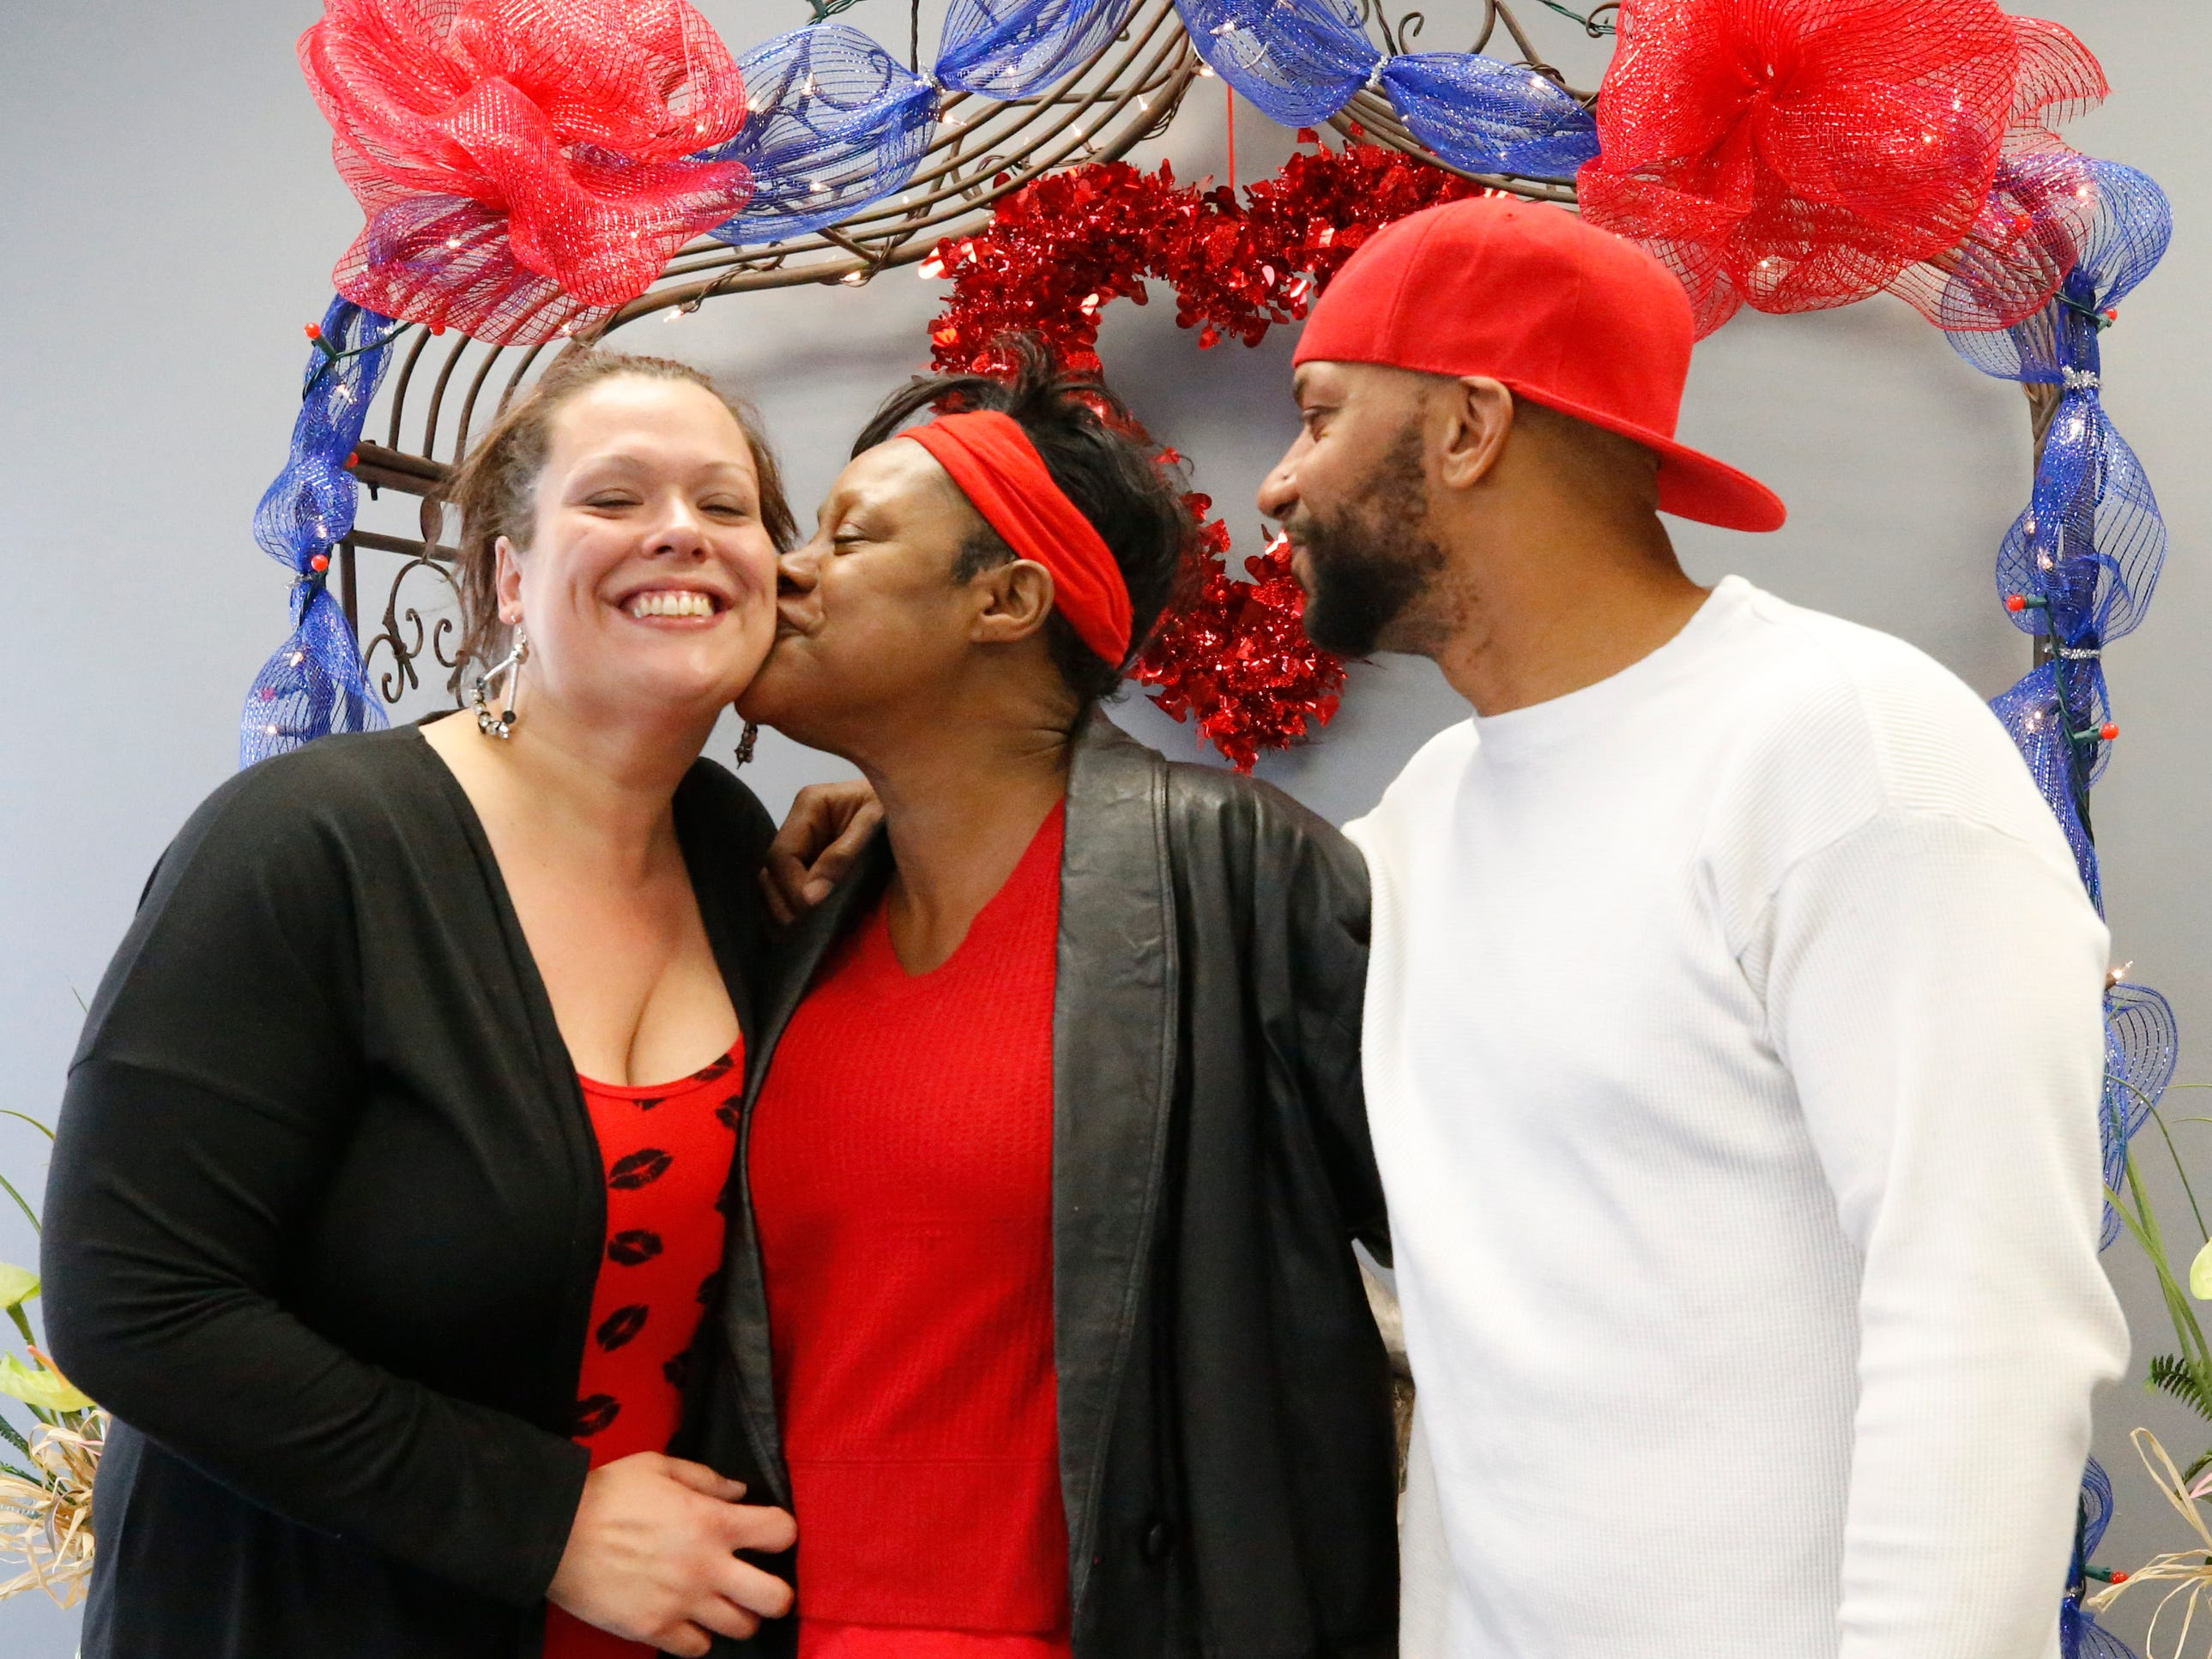 Vira King, middle, kisses Kimberly (Ervin) Aiden, left, after Aiden married her nephew Shermaine Aiden, right on Valentine's Day, in Murfreesboro, on Thursday, Feb. 14, 2019.